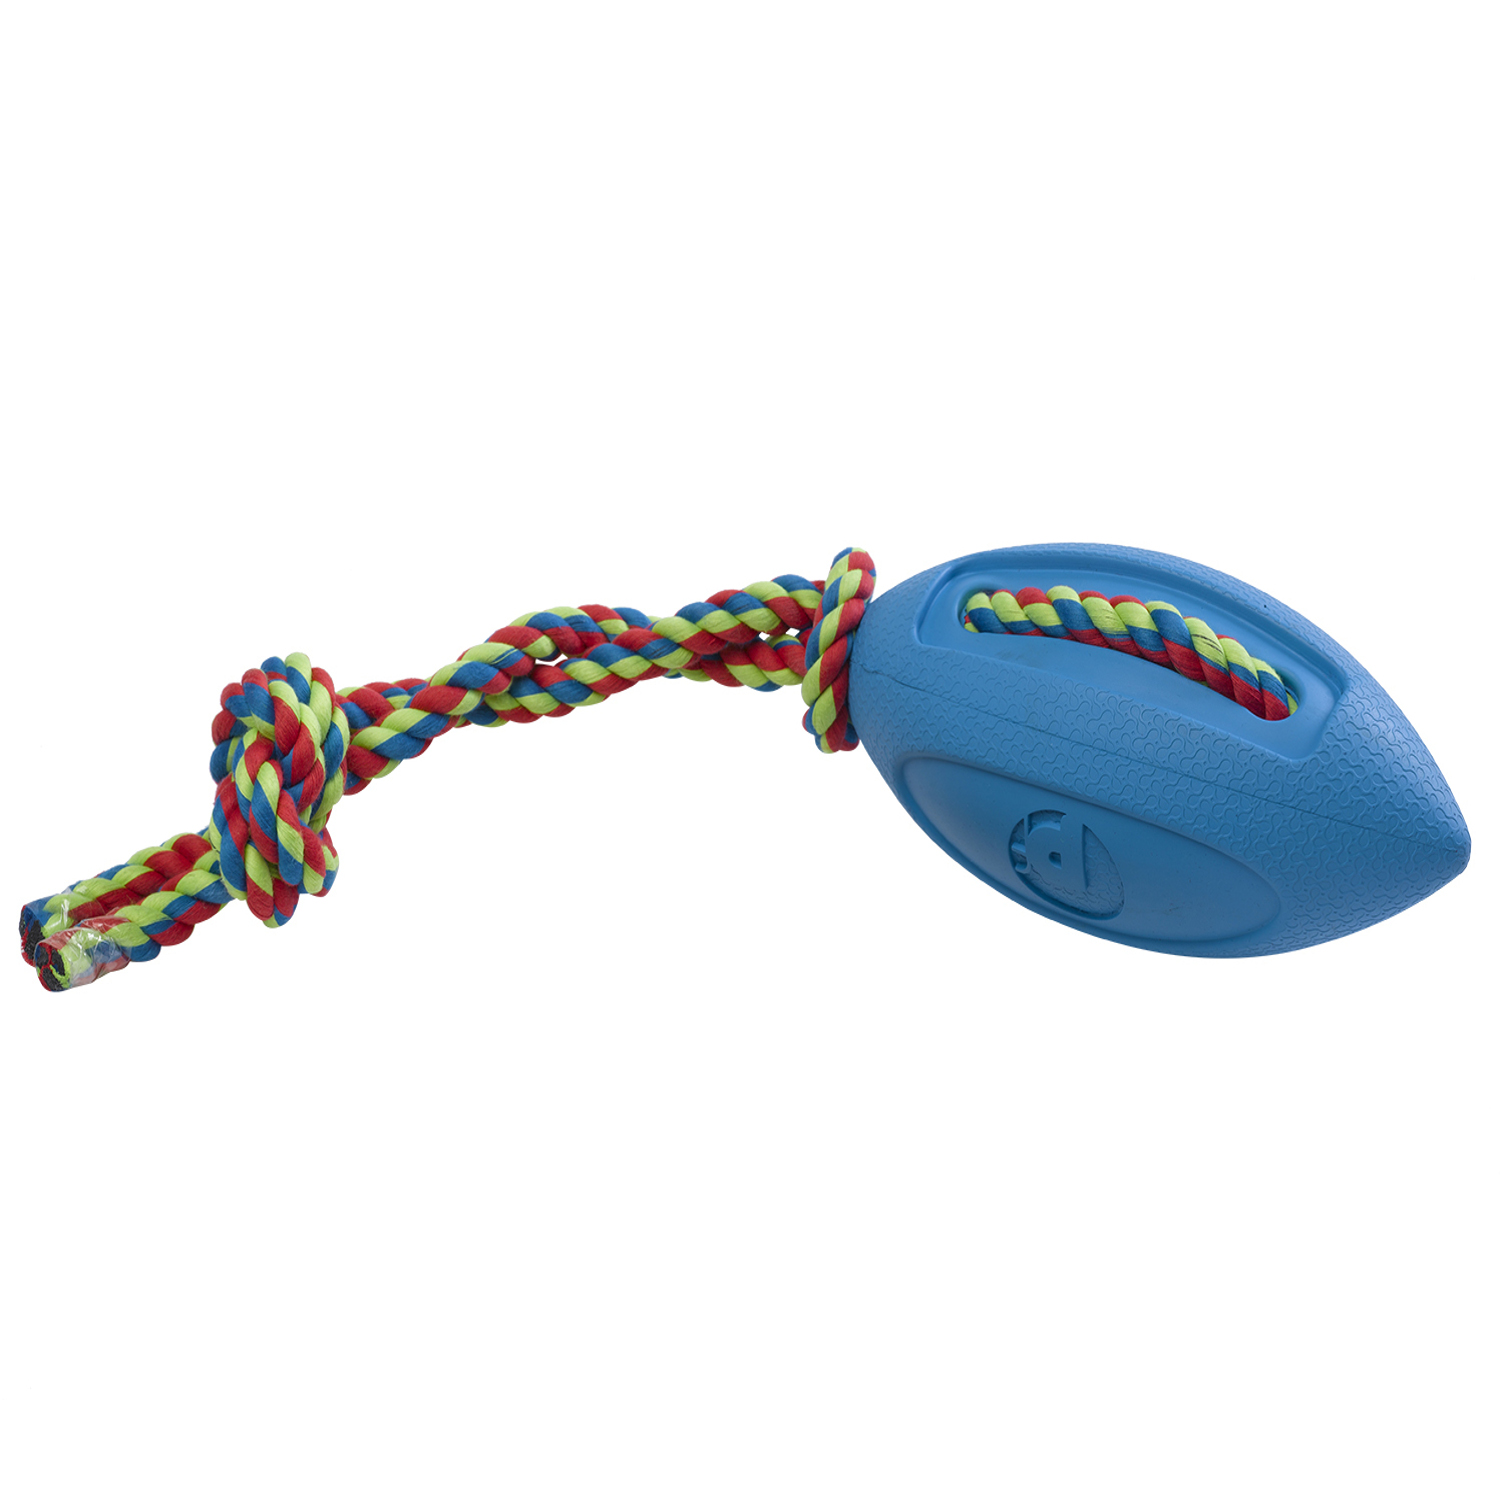 petface-toyz-rugby-tugger-tug-rope-floating-water-land-toy-blue-large.jpg